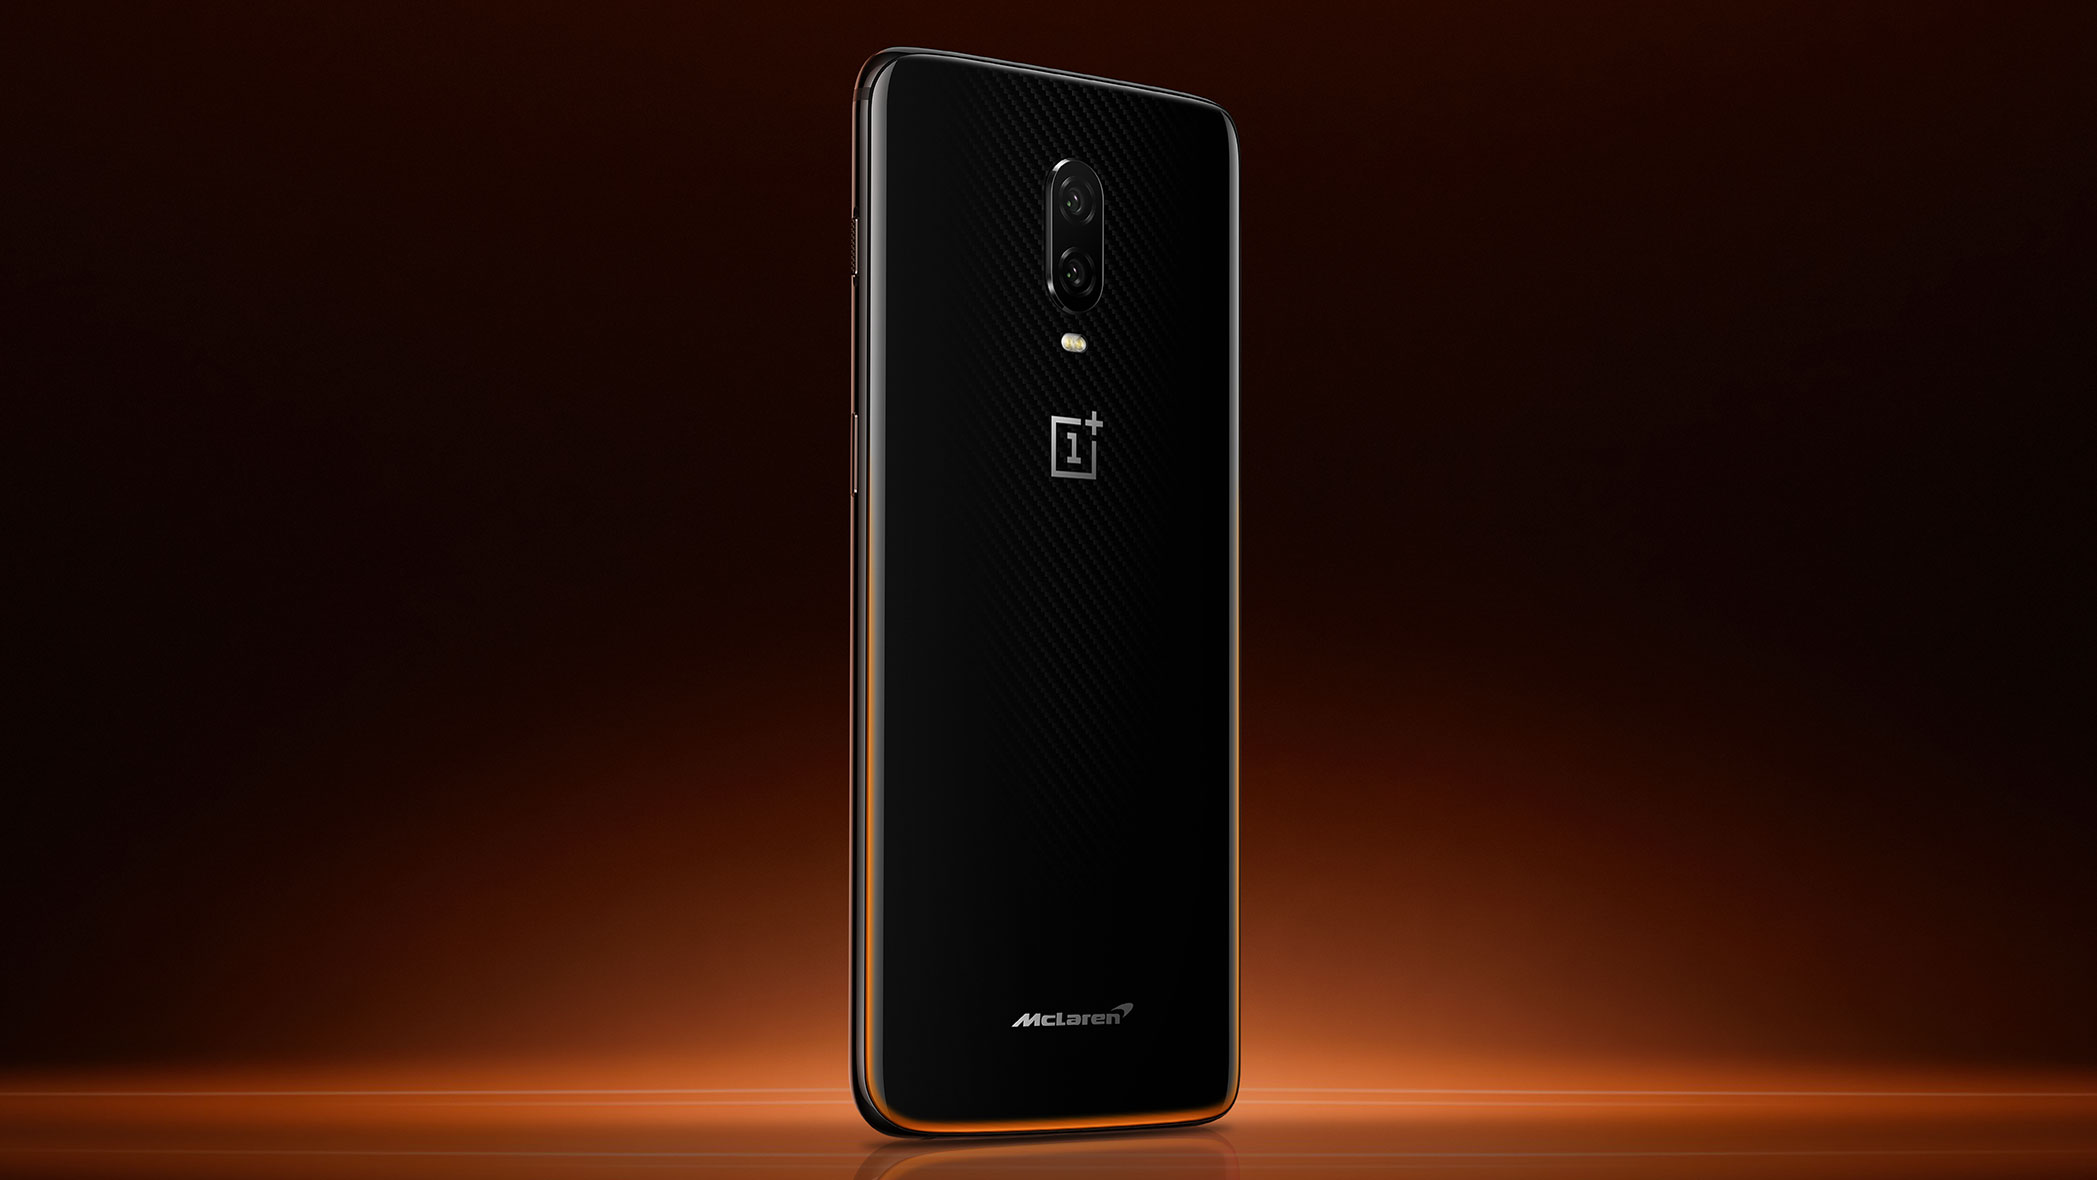 You can now buy the OnePlus 6T McLaren Edition in India | TechRadar